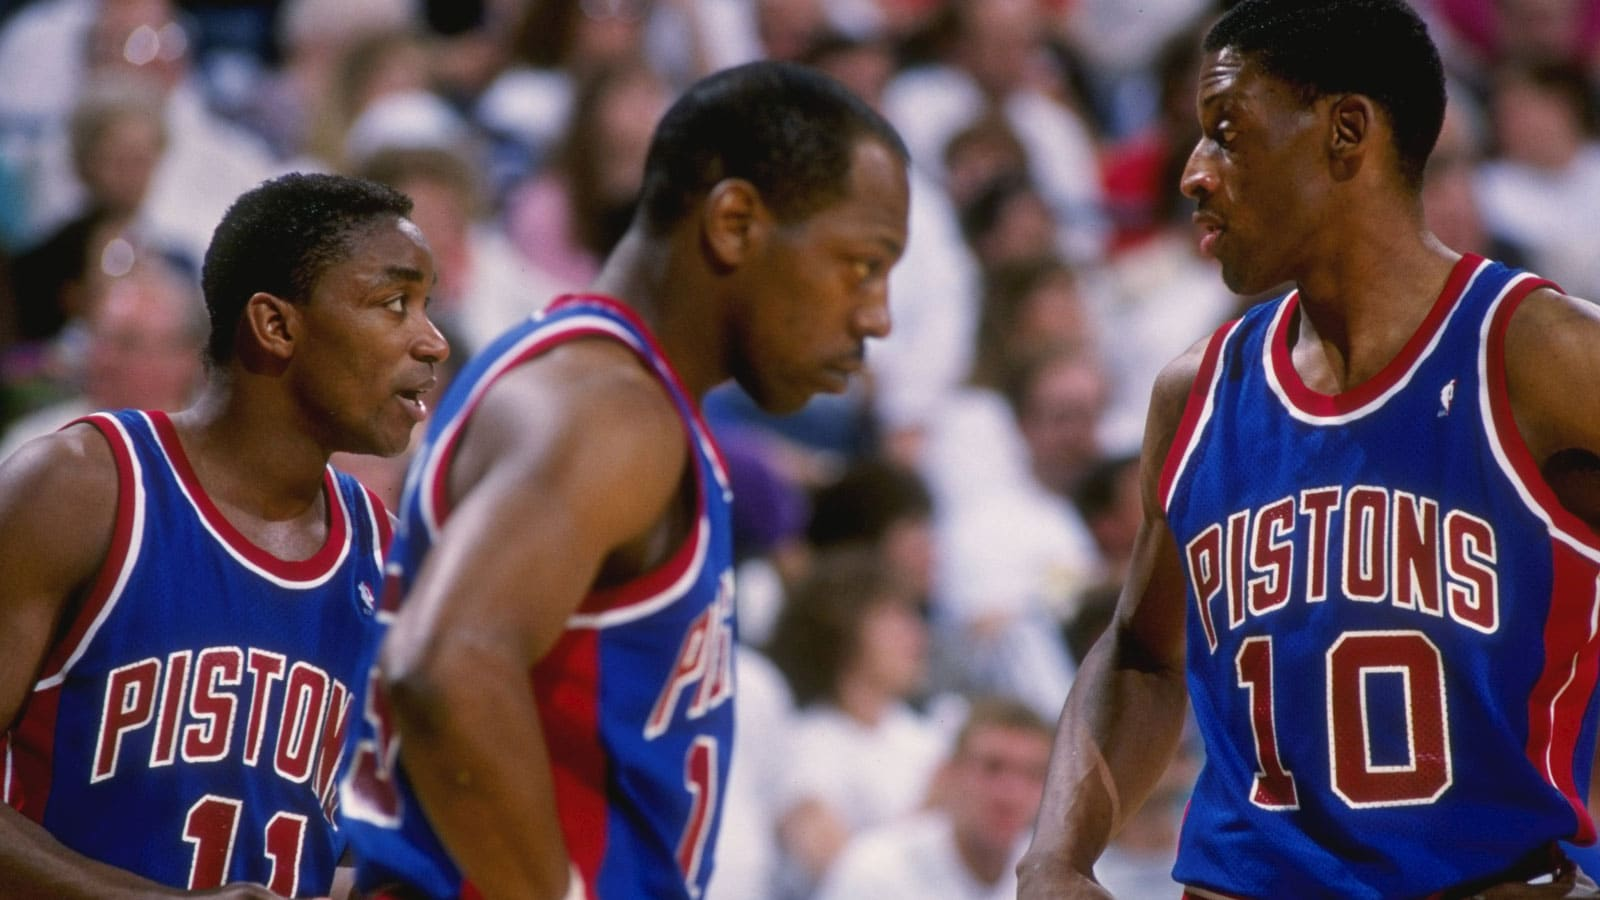 Guard Isiah Thomas, left, forward Dennis Rodman, right, and forward Vinnie Johnson of the Detroit Pistons talk to each other during a game.